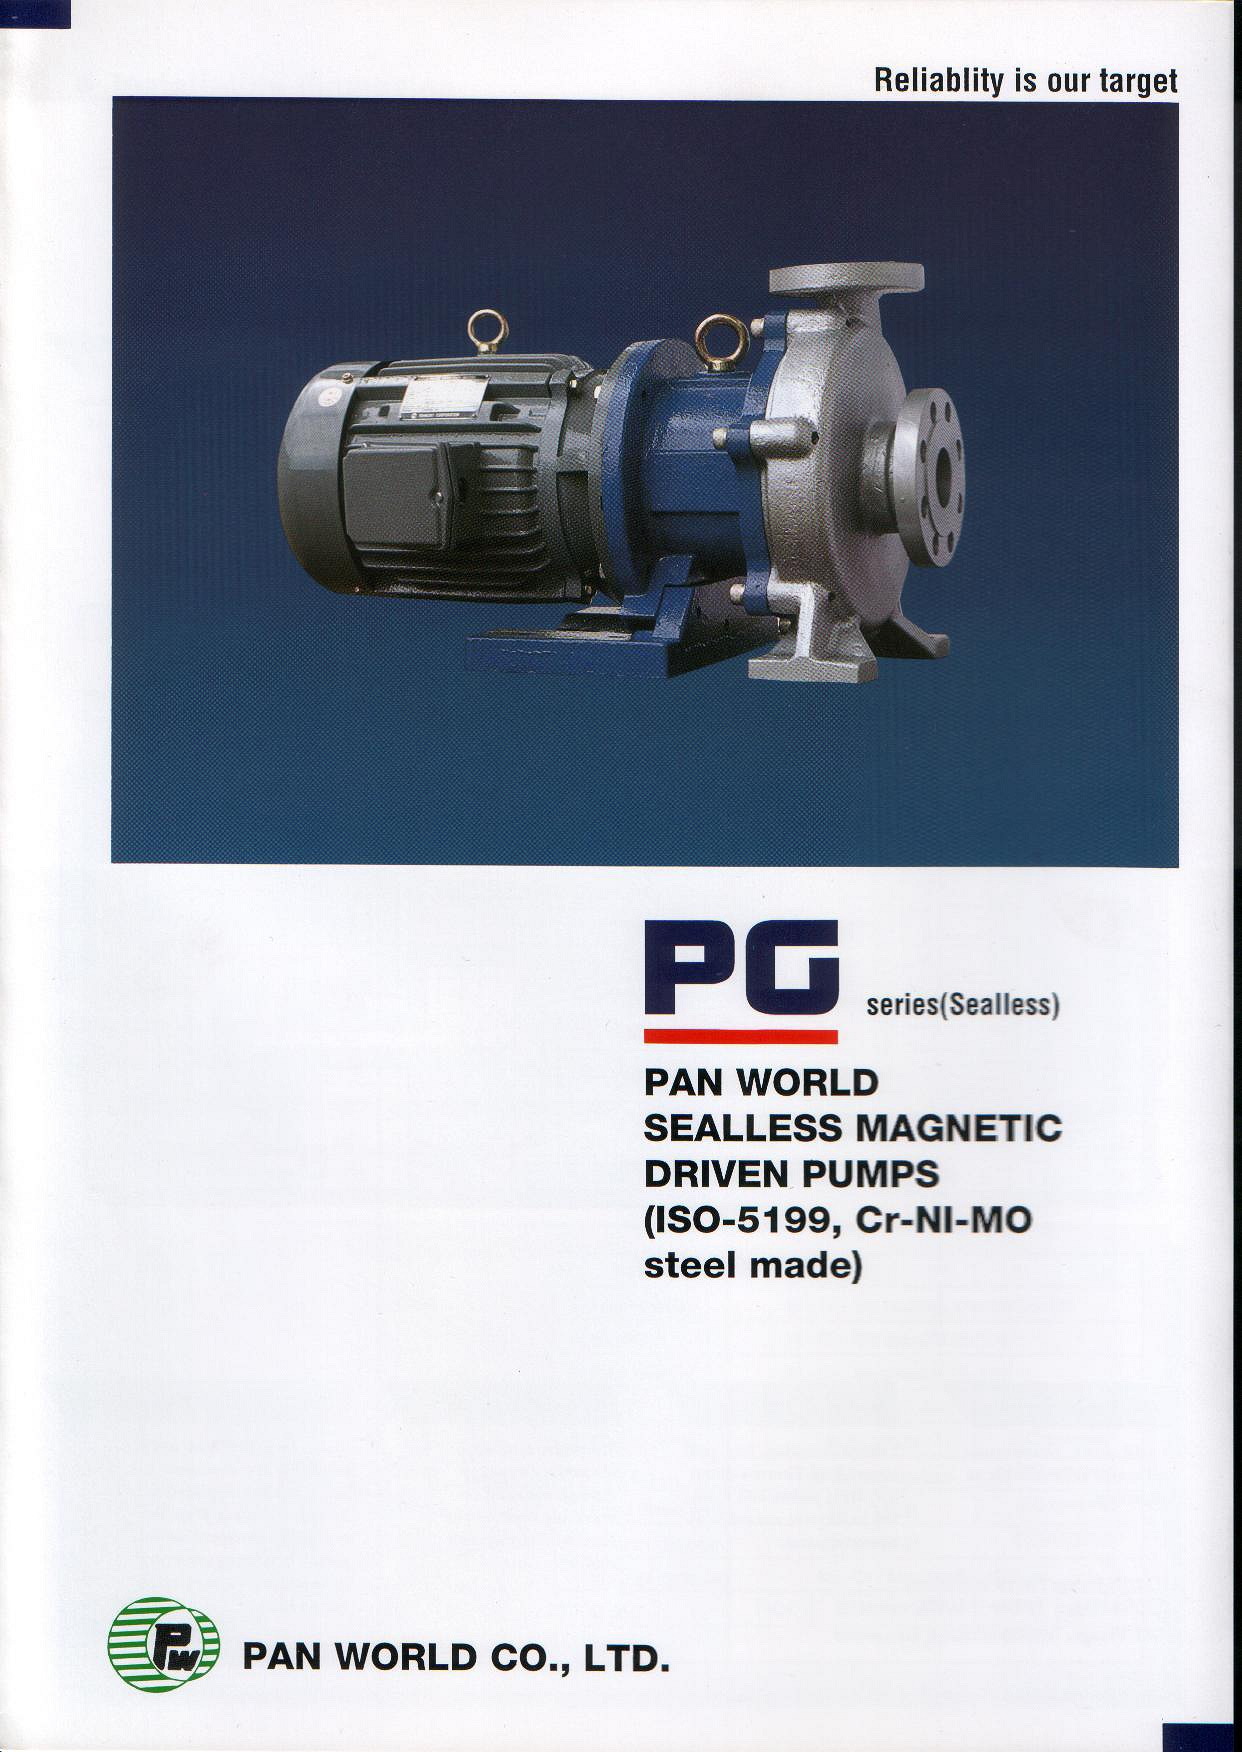 Panworld - PG series